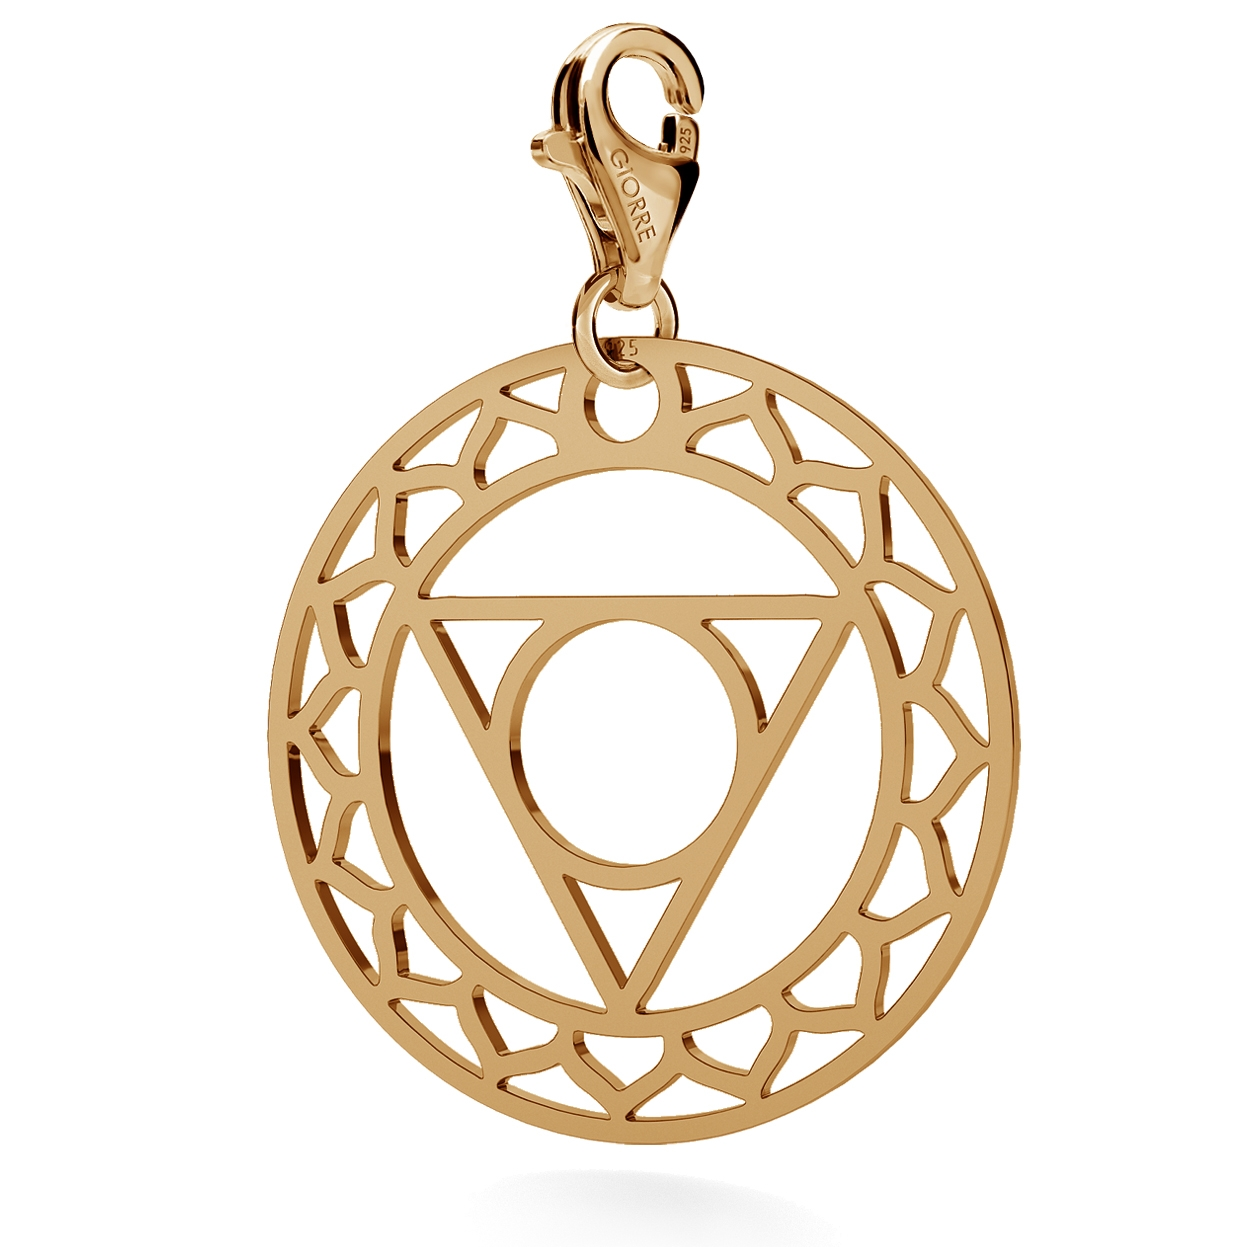 CHARM 70, THROAT CHAKRA, STERLING SILVER (925) RHODIUM OR GOLD PLATED